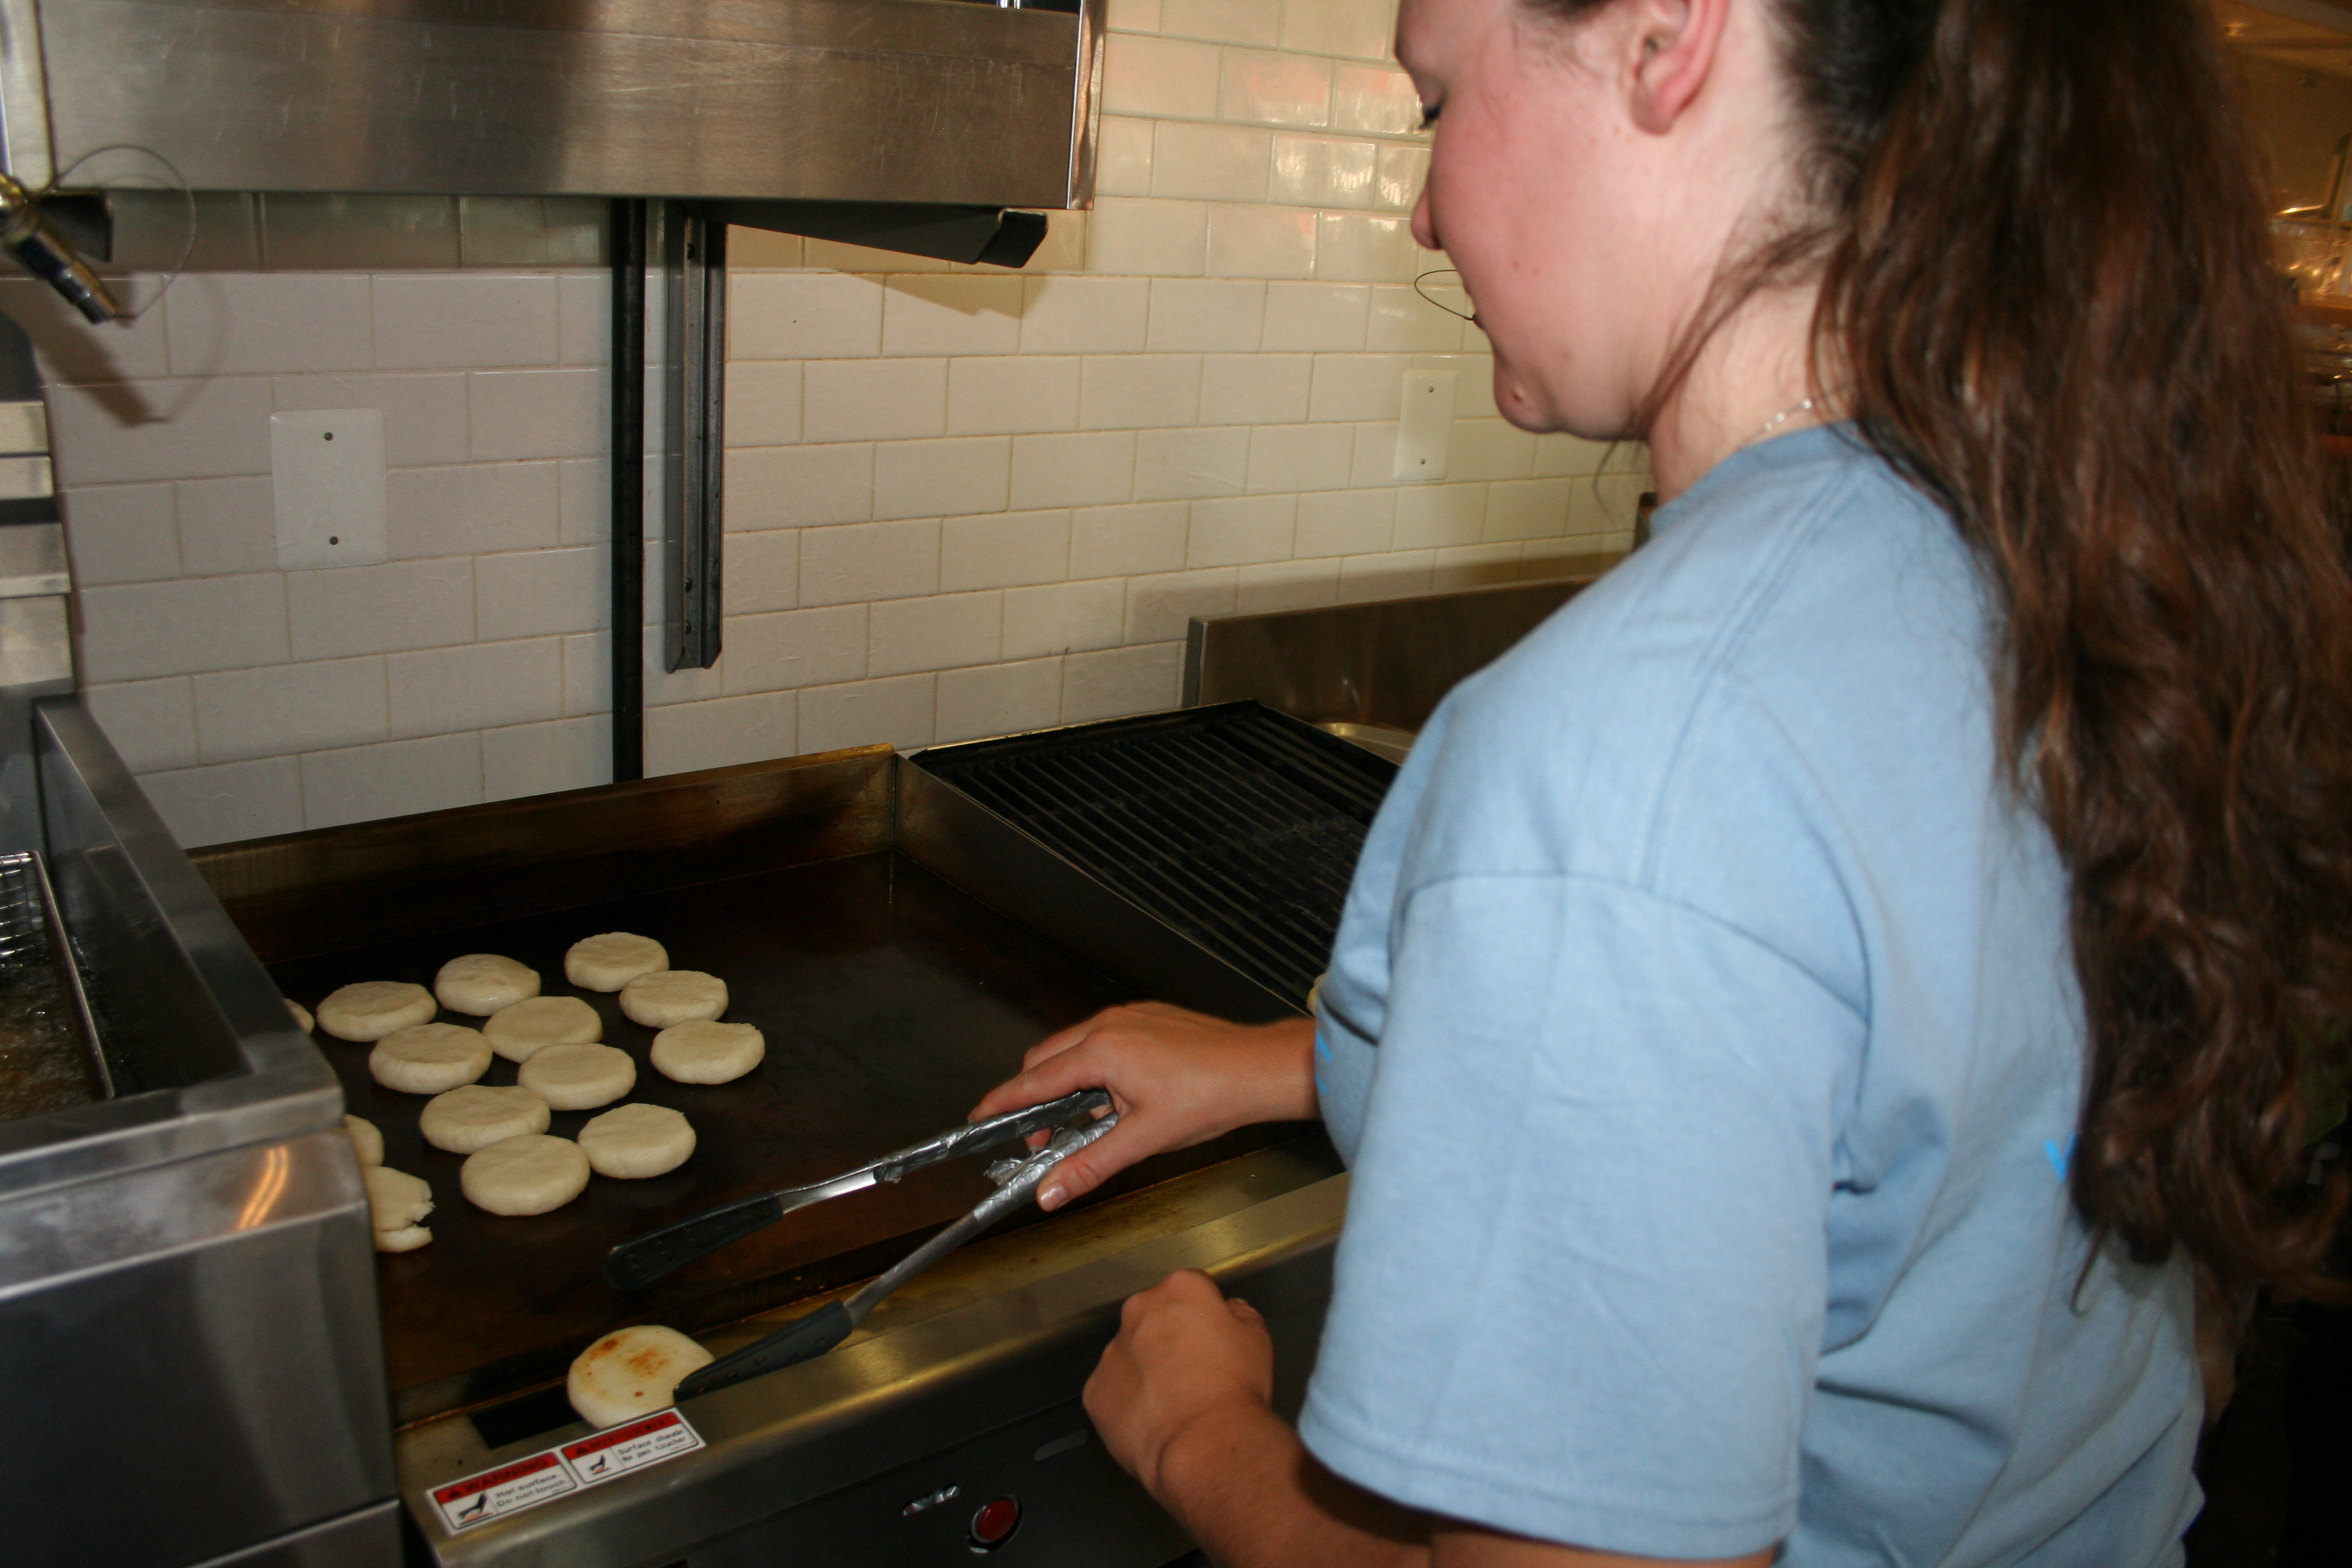 An employee grills the arepas before they are filled. (Photo: Mark Heckathorn/DC on Heels)